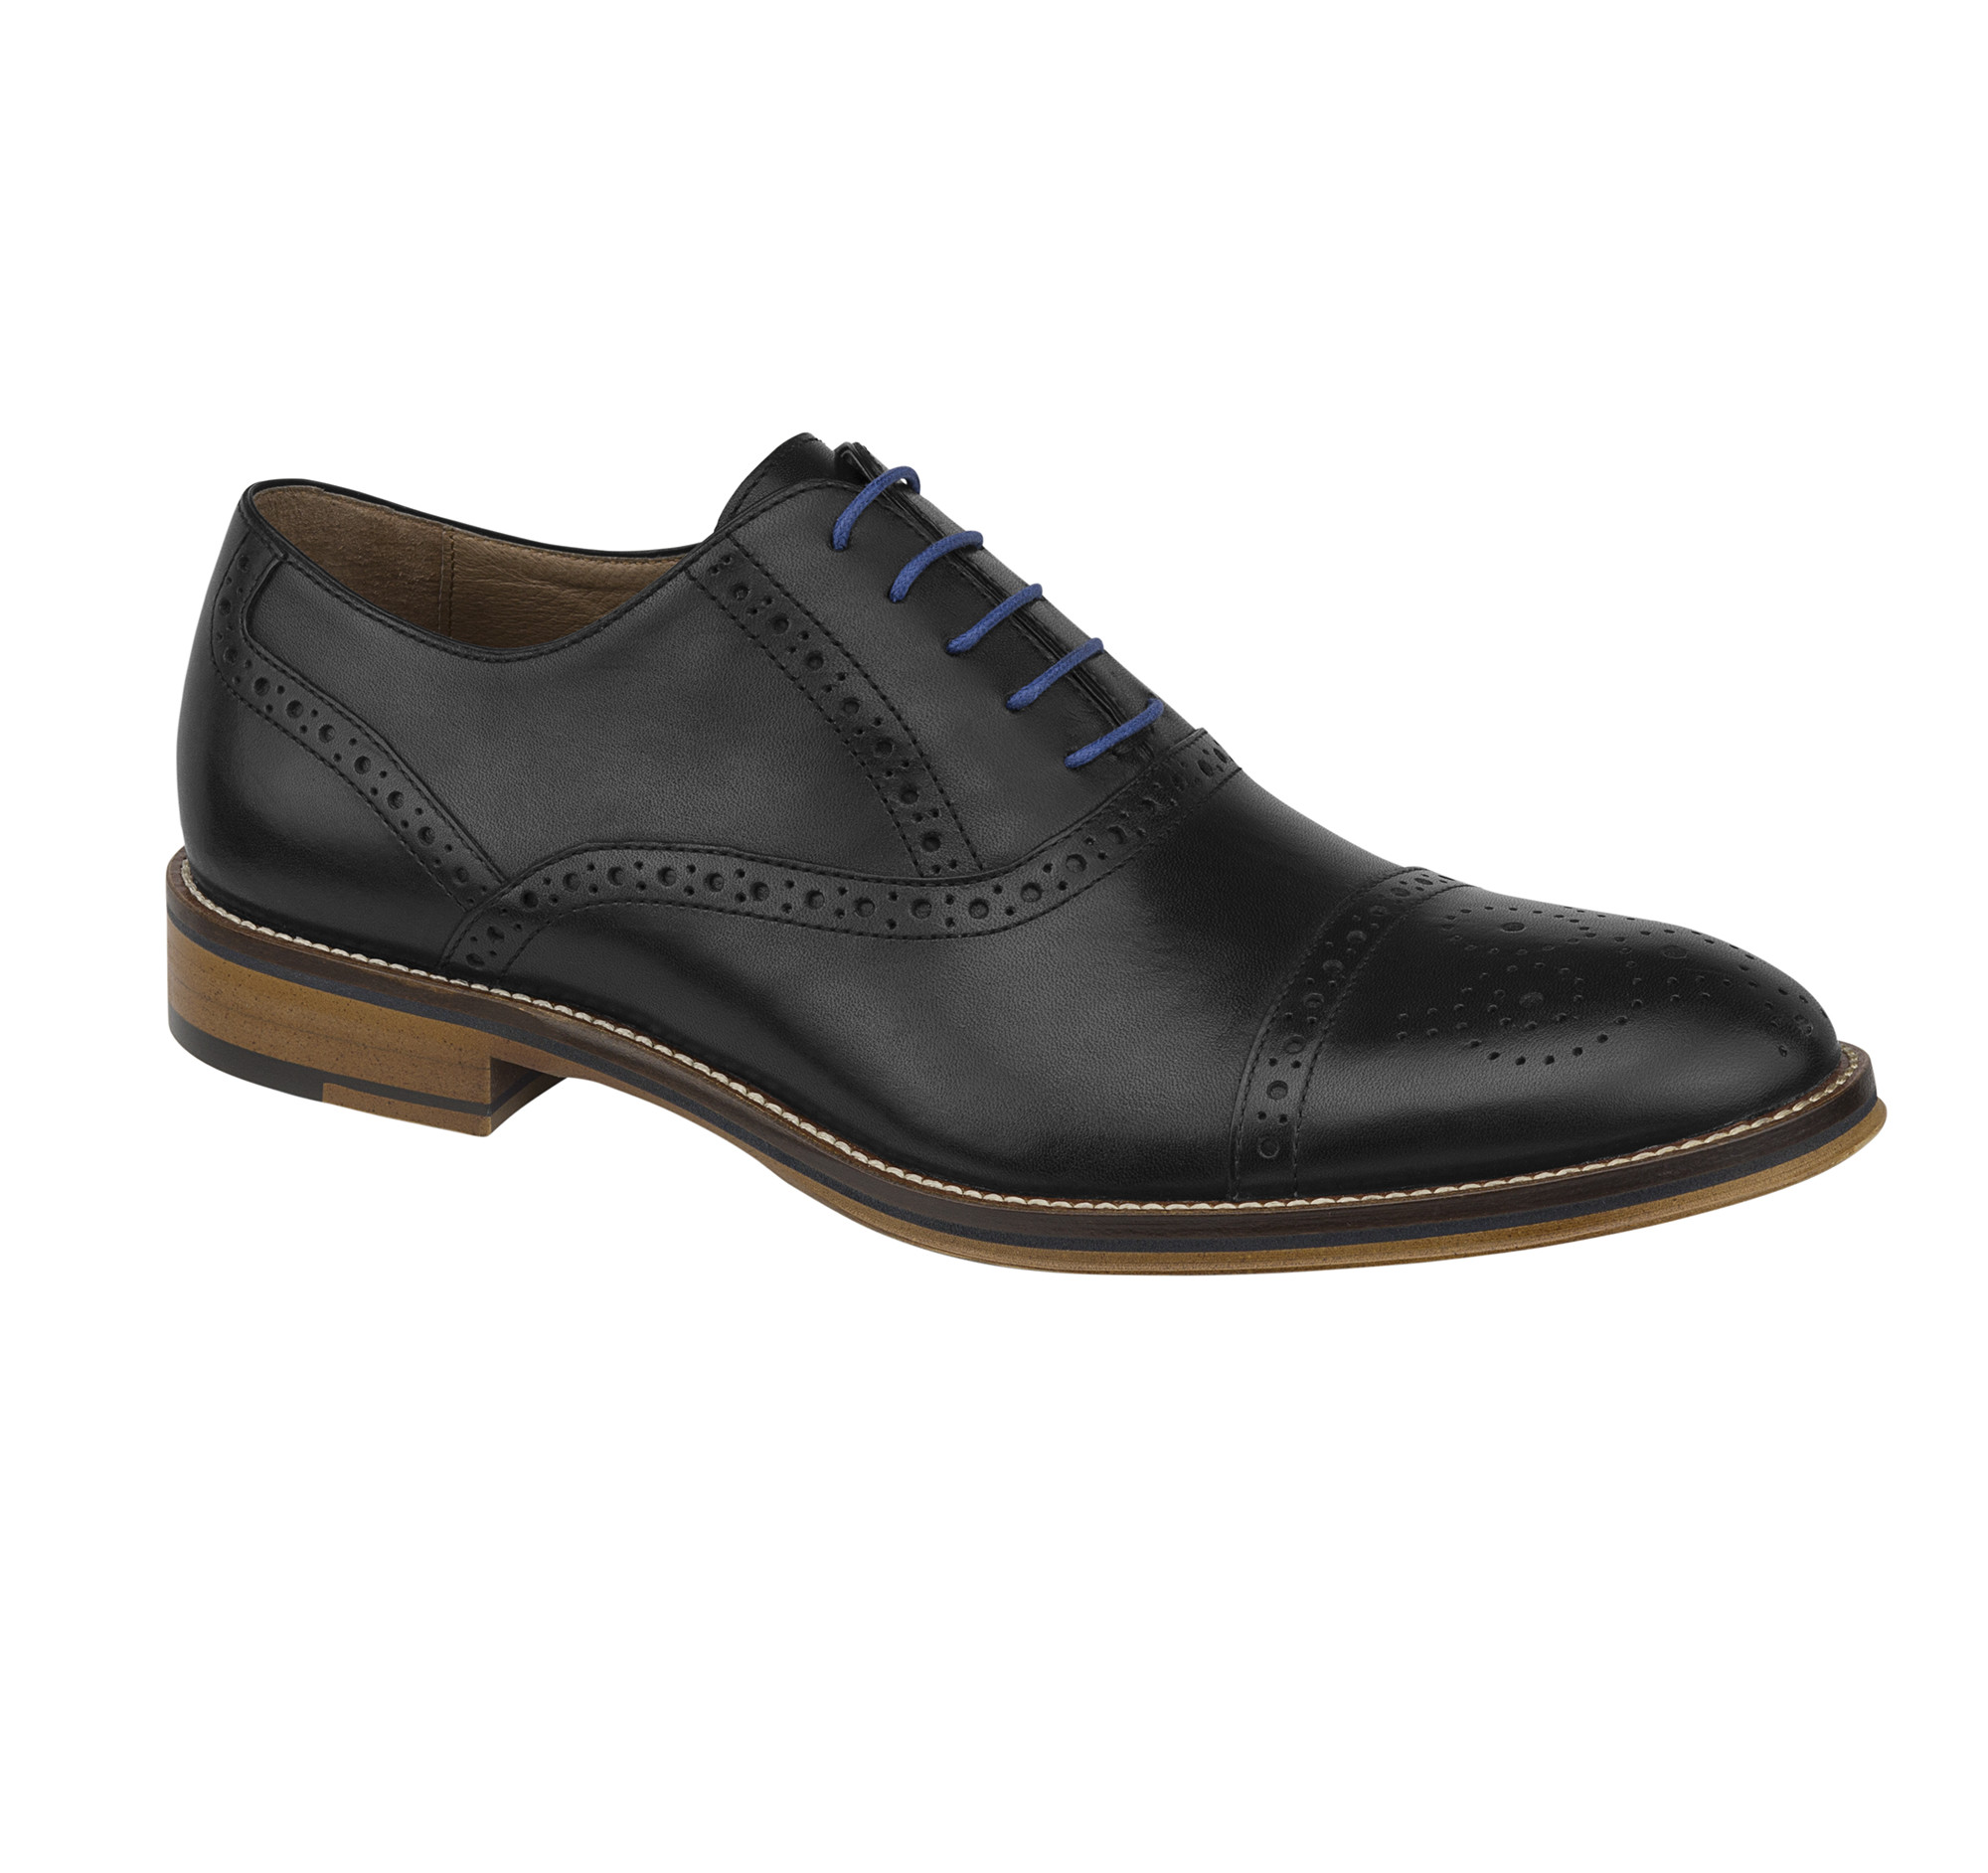 Johnson Murphy Shoes For Sale